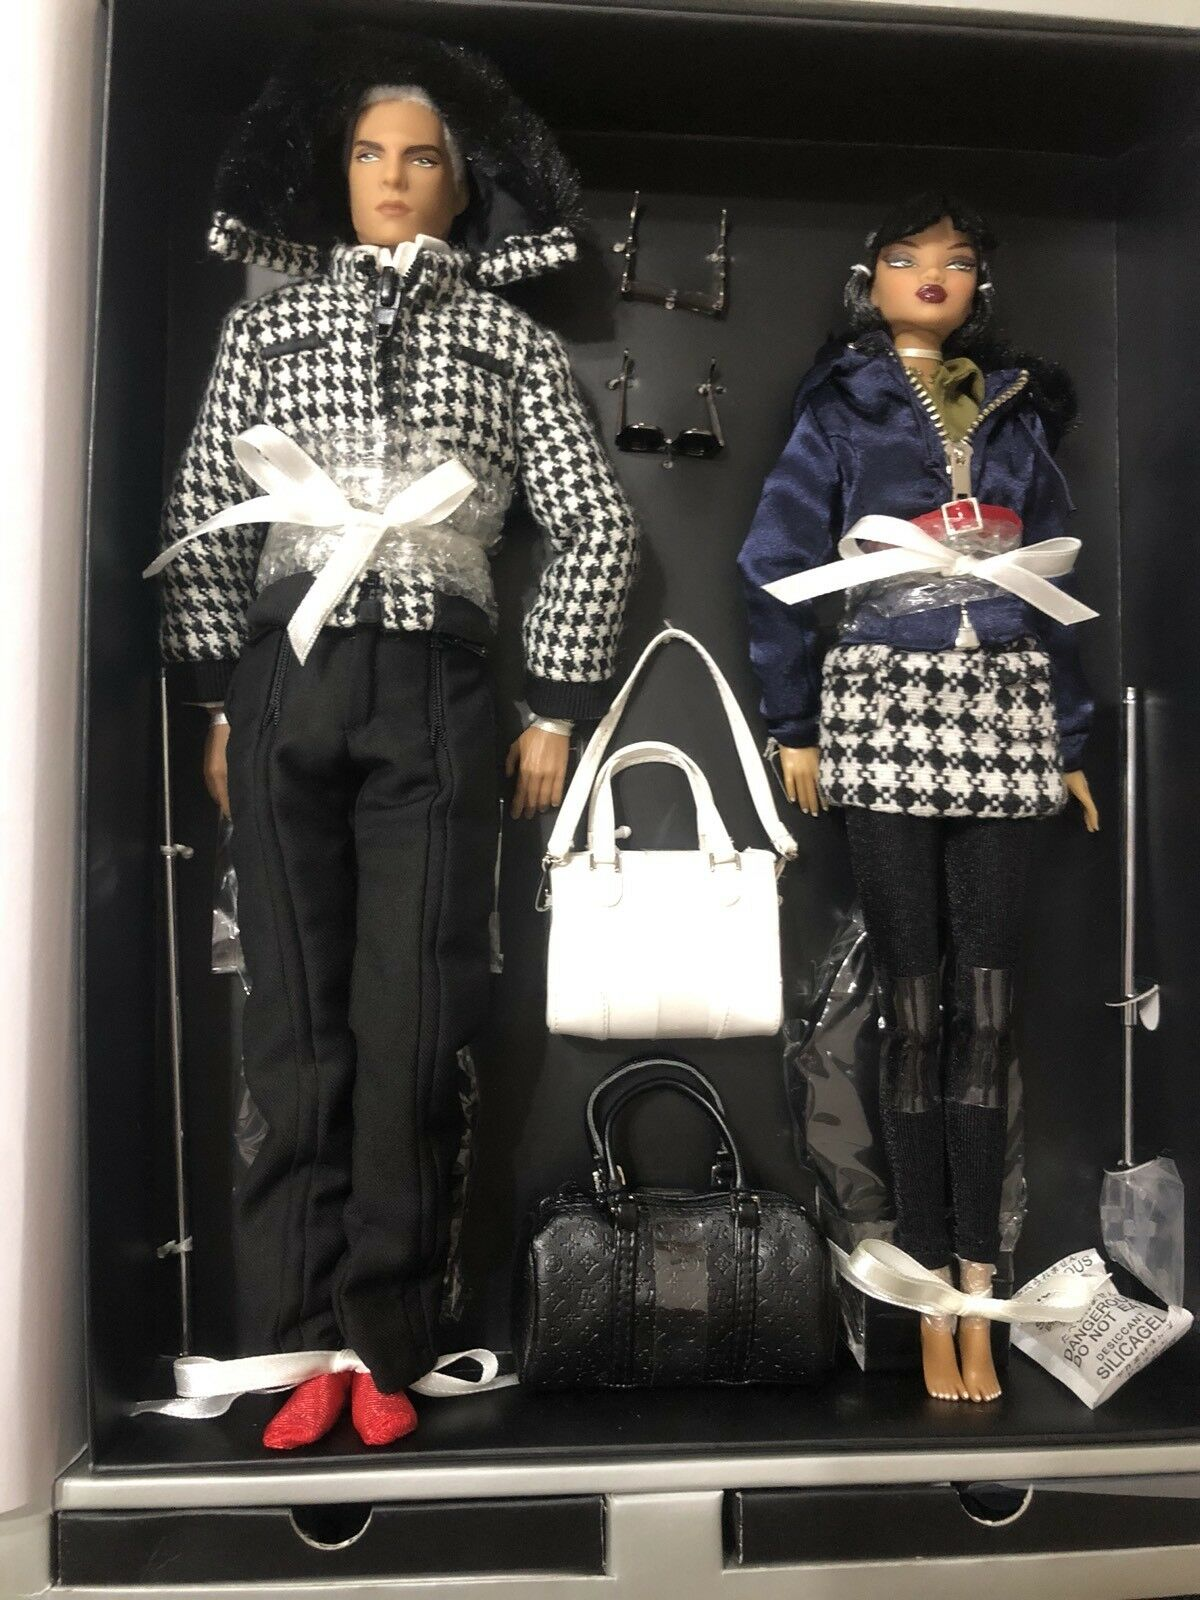 Checking Out Francisco And Colette - Fashion Royalty- Jason Wu NRFB 2 Doll Set